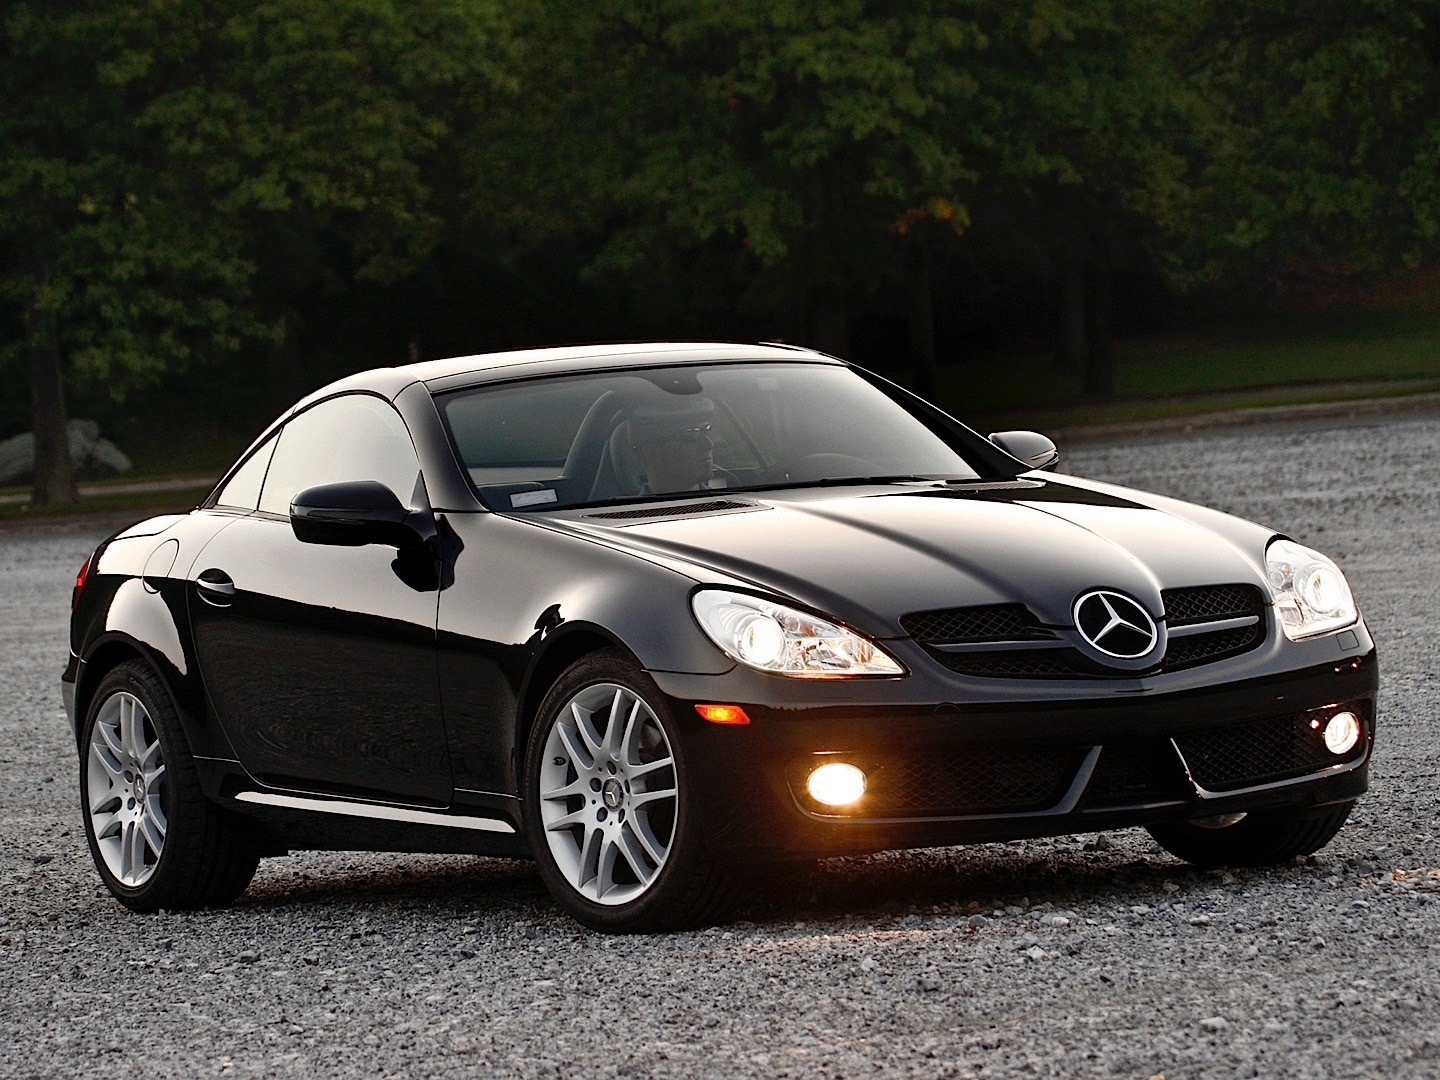 Mercedes benz slk r171 specs 2008 2009 2010 2011 for Mercedes benz cars images